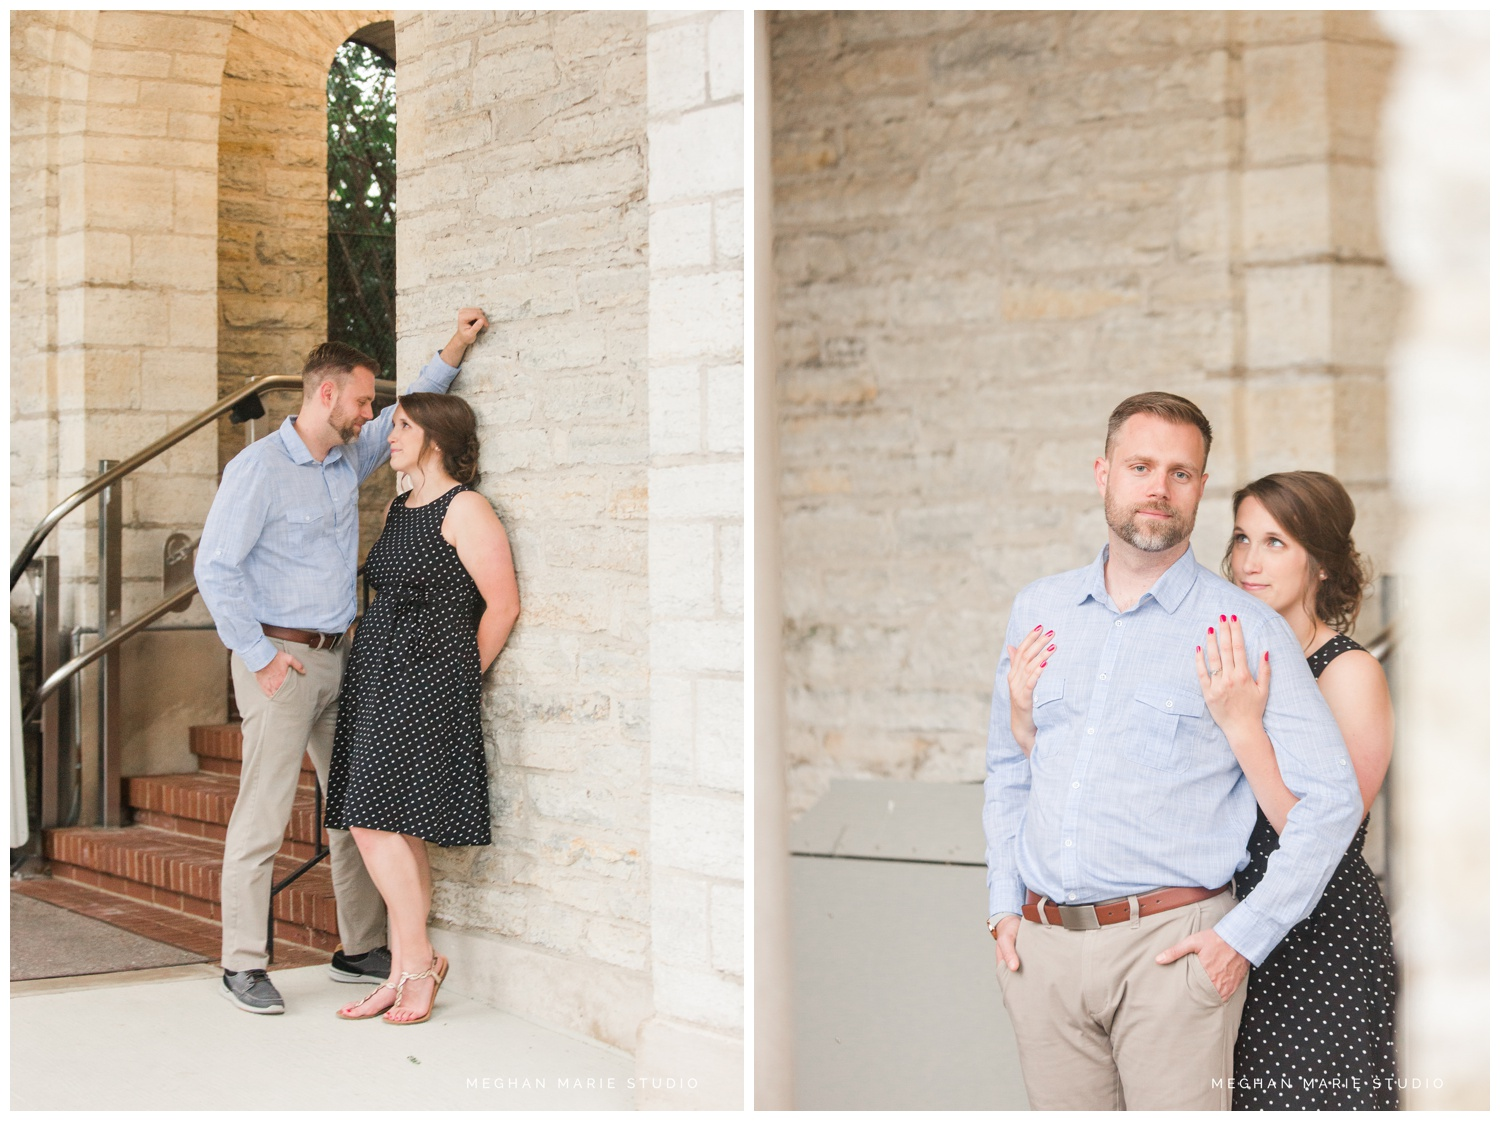 downtown-troy-urban-vintage-engagement-wedding-photography-hayner-cultural-center-meghan-marie-studio_0166.jpg